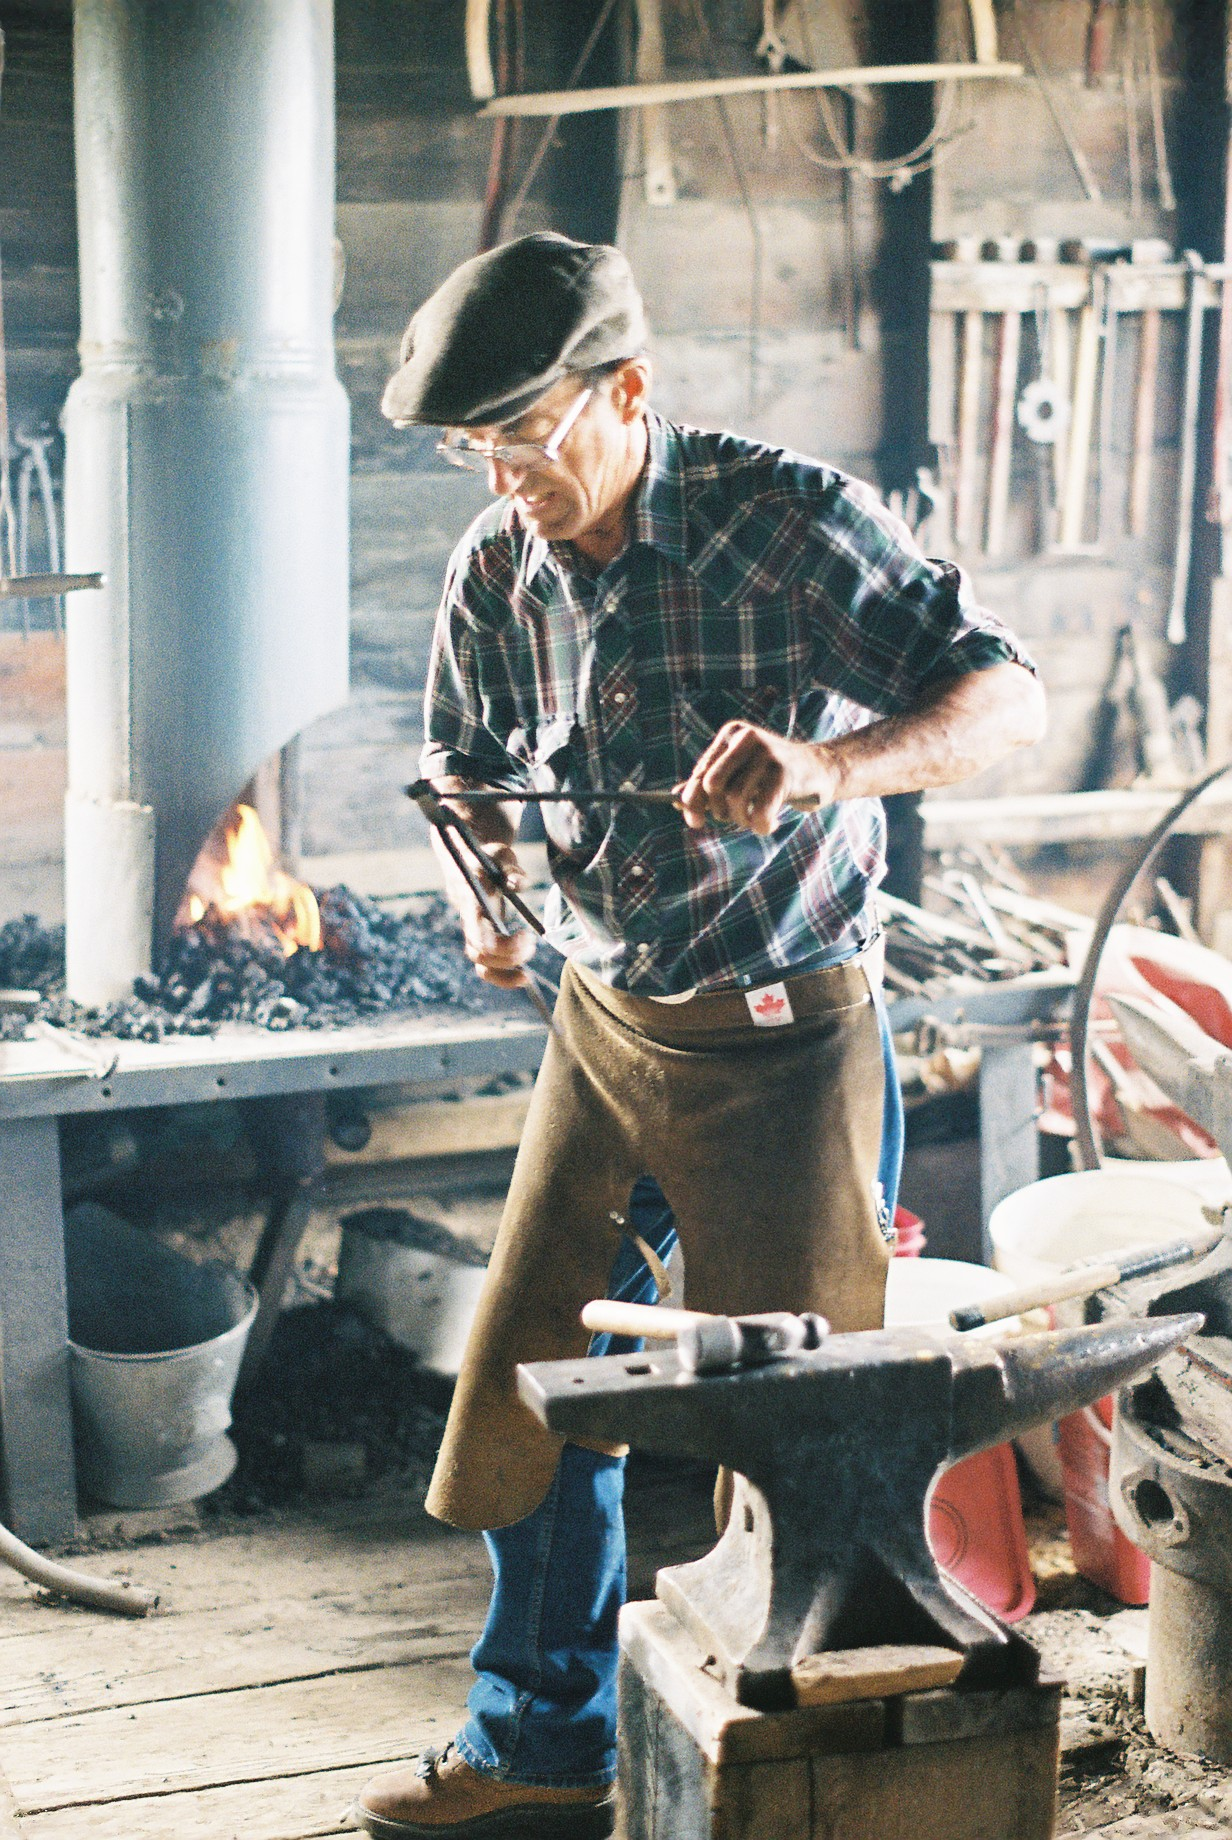 blacksmith_demonstration_don_fox_photo_mark_lowe